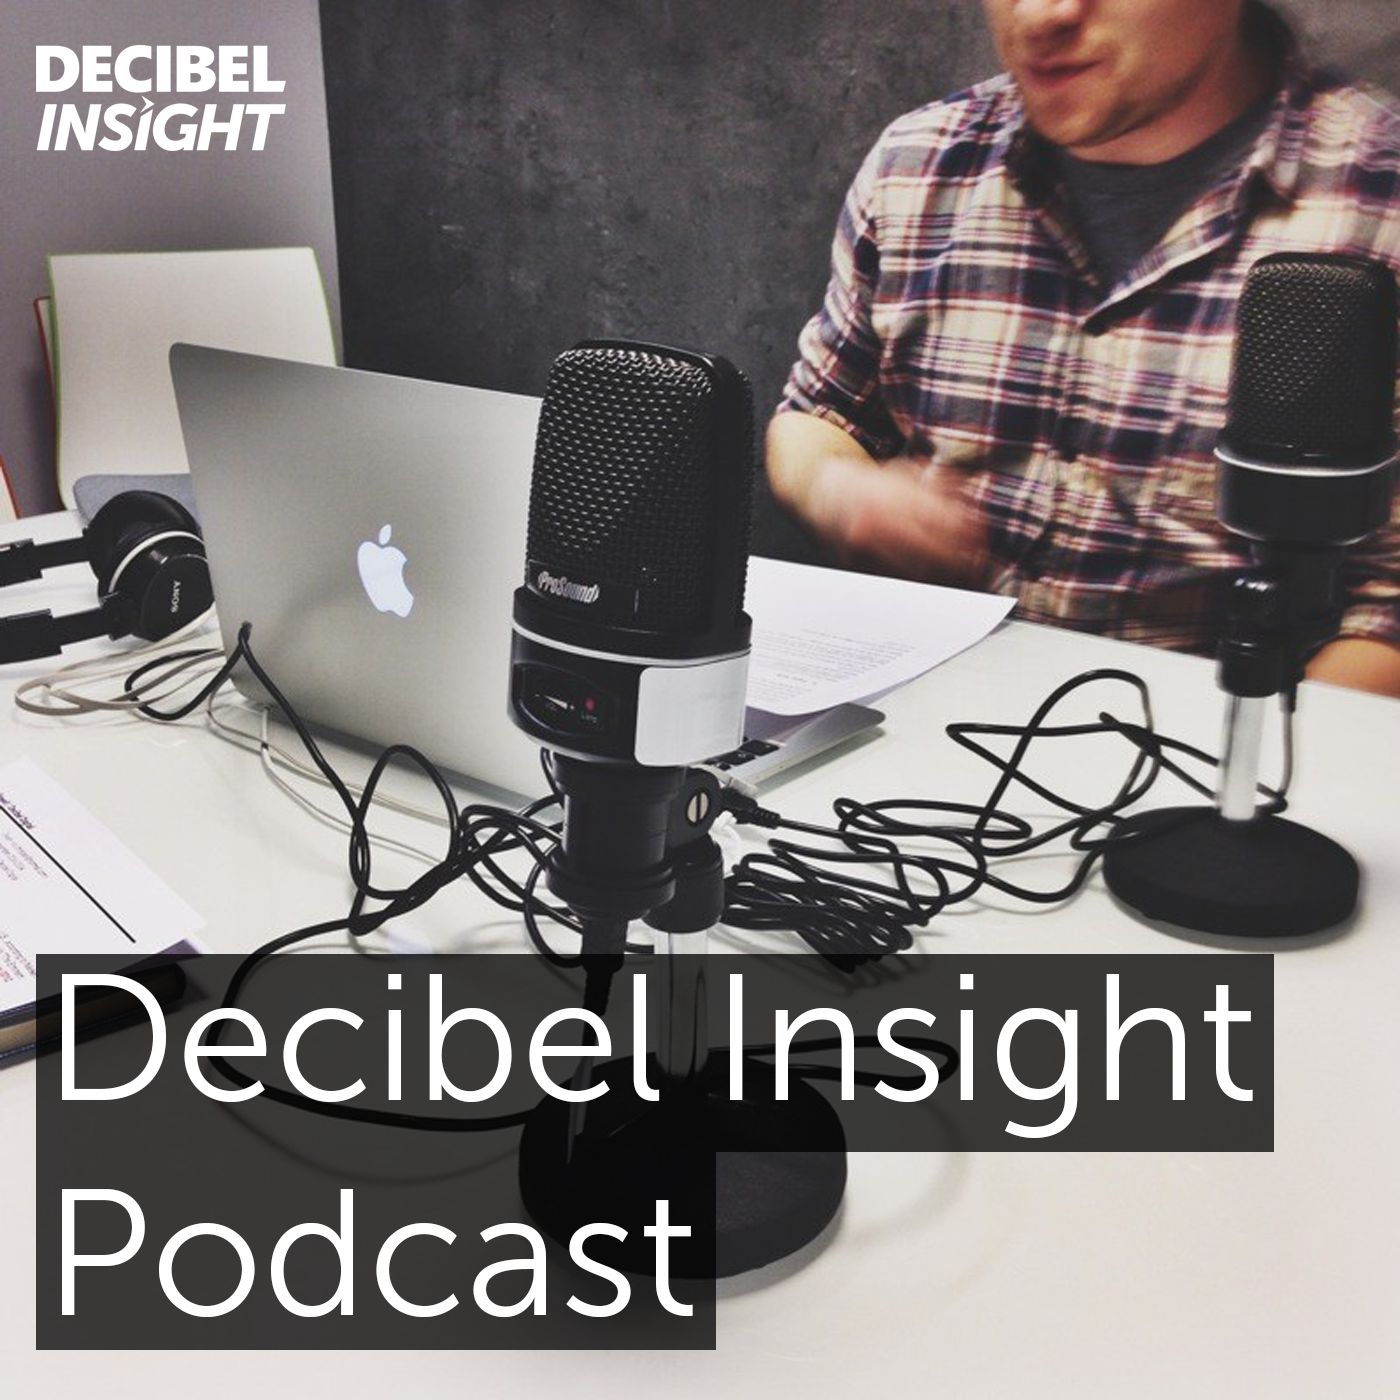 Decibel Insight Podcast